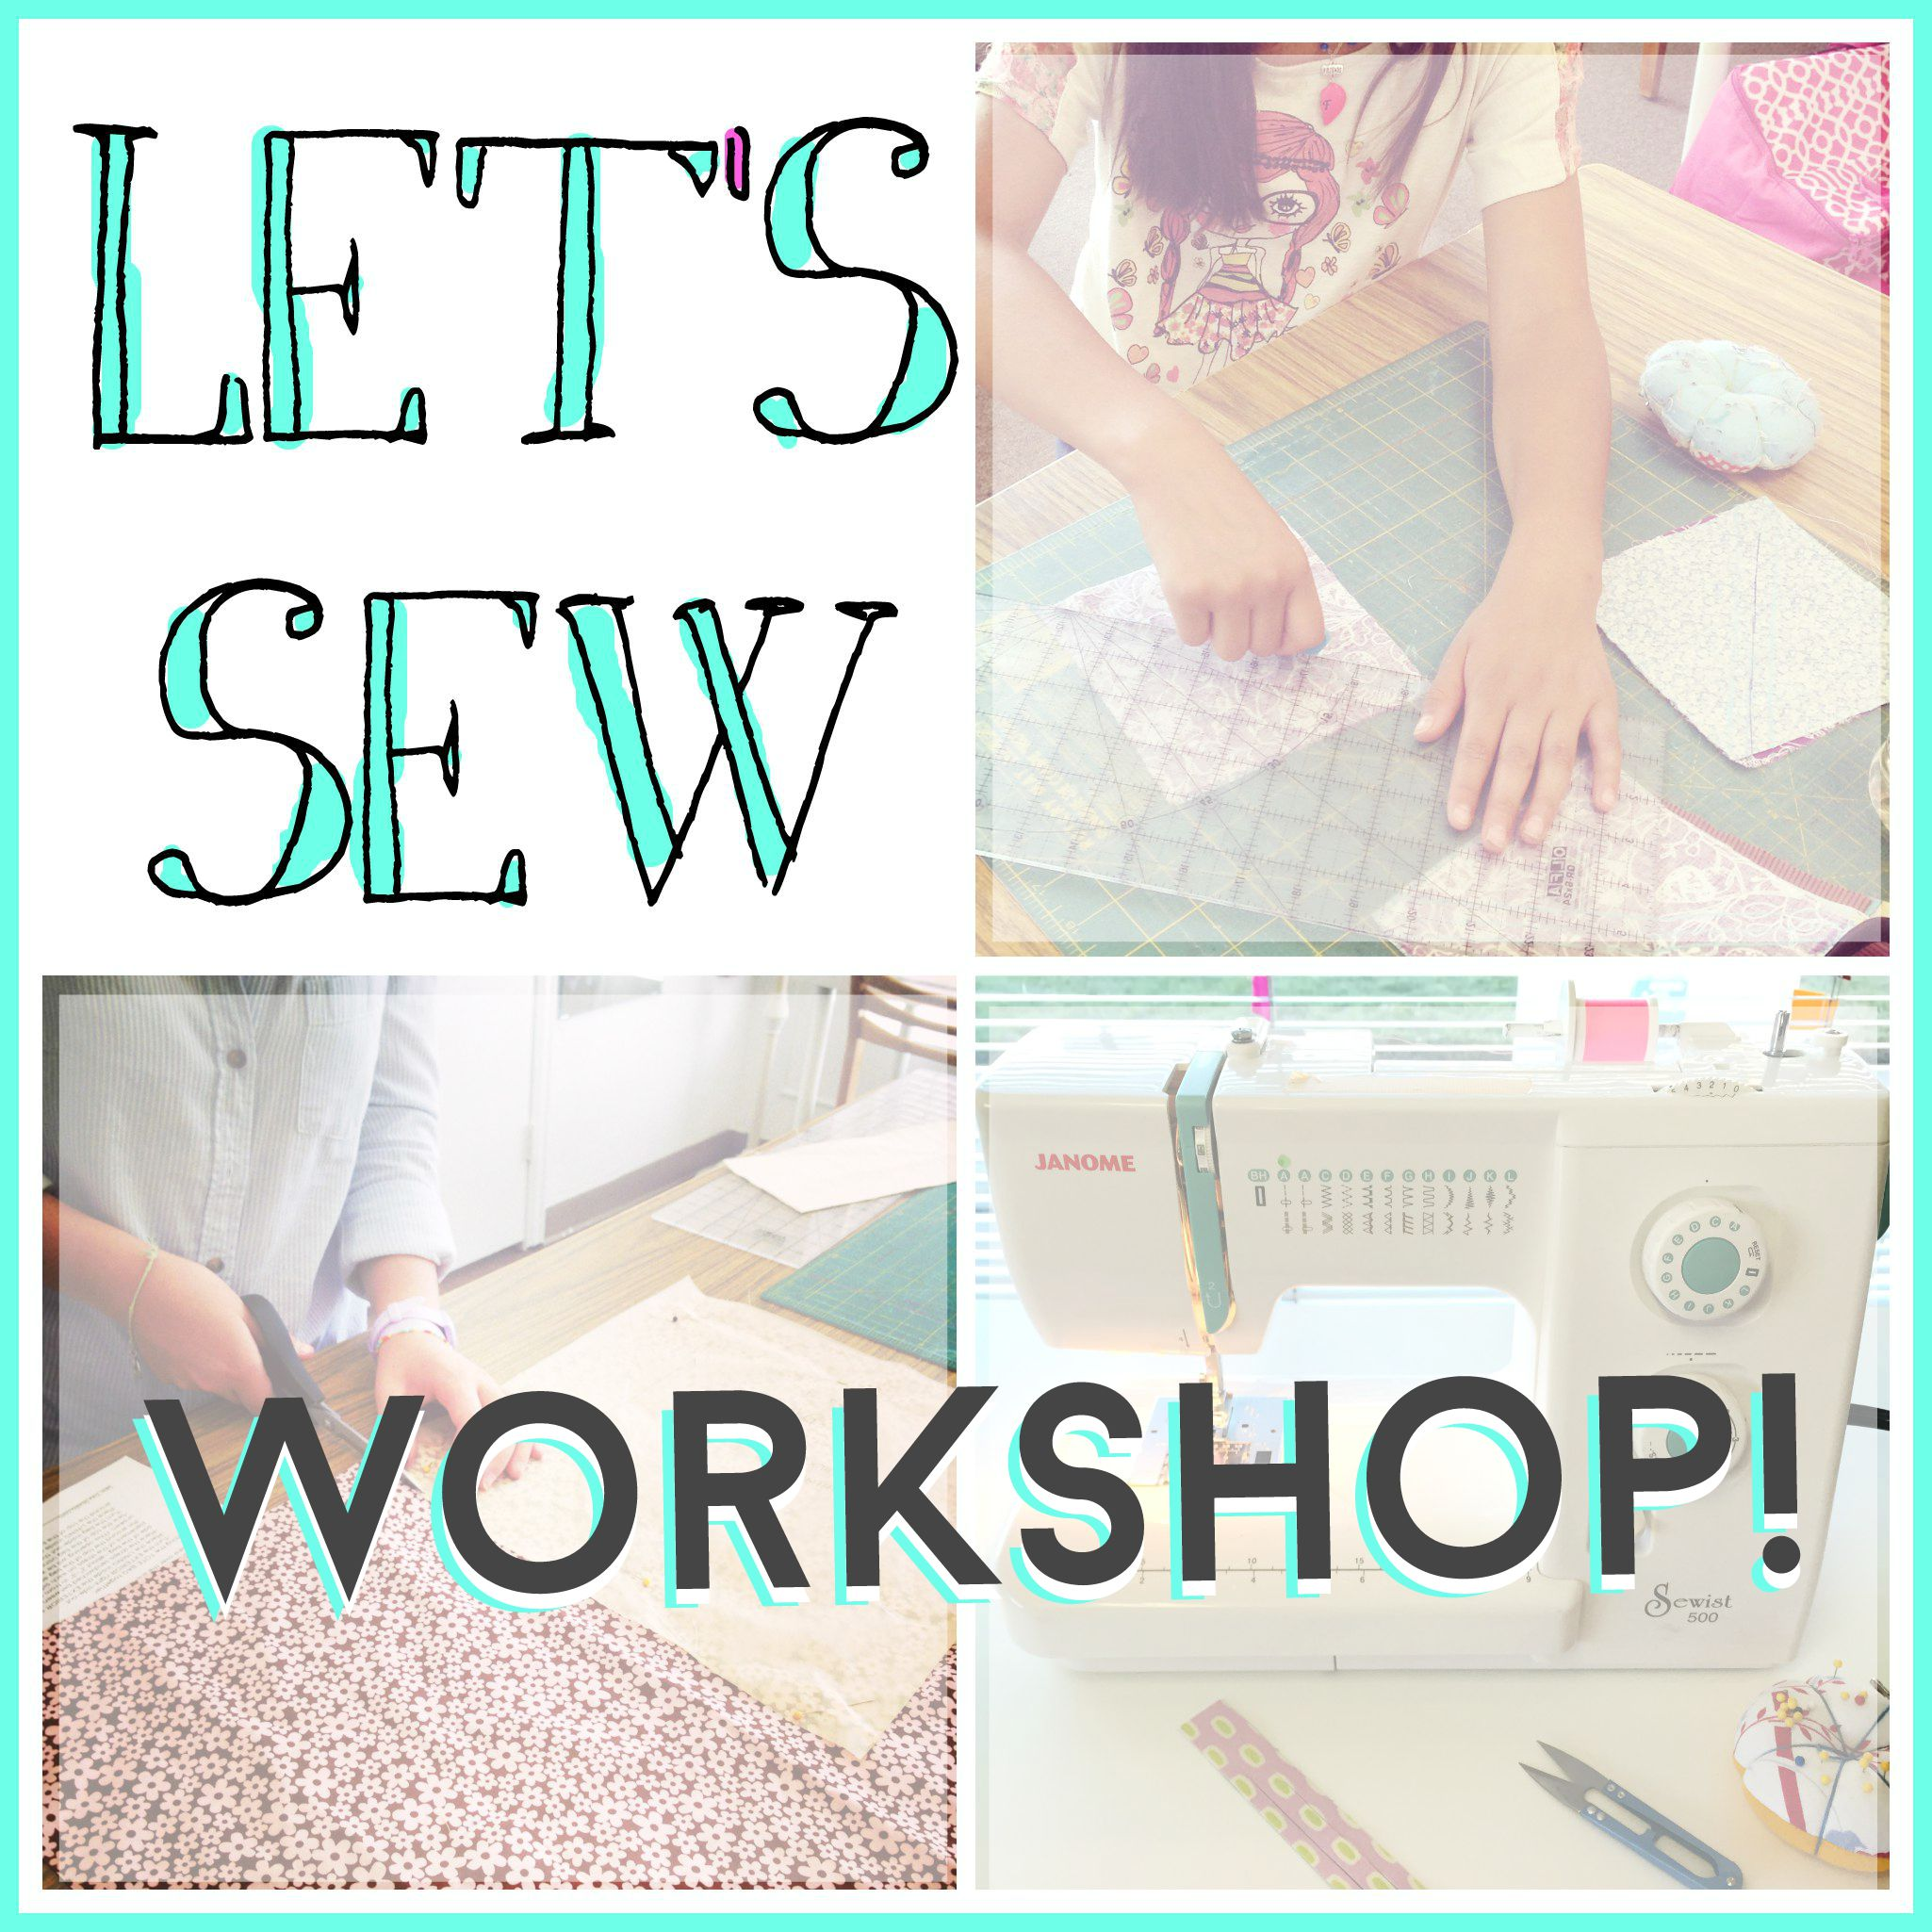 Let's Sew WORKSHOP | Sew You Studio.com